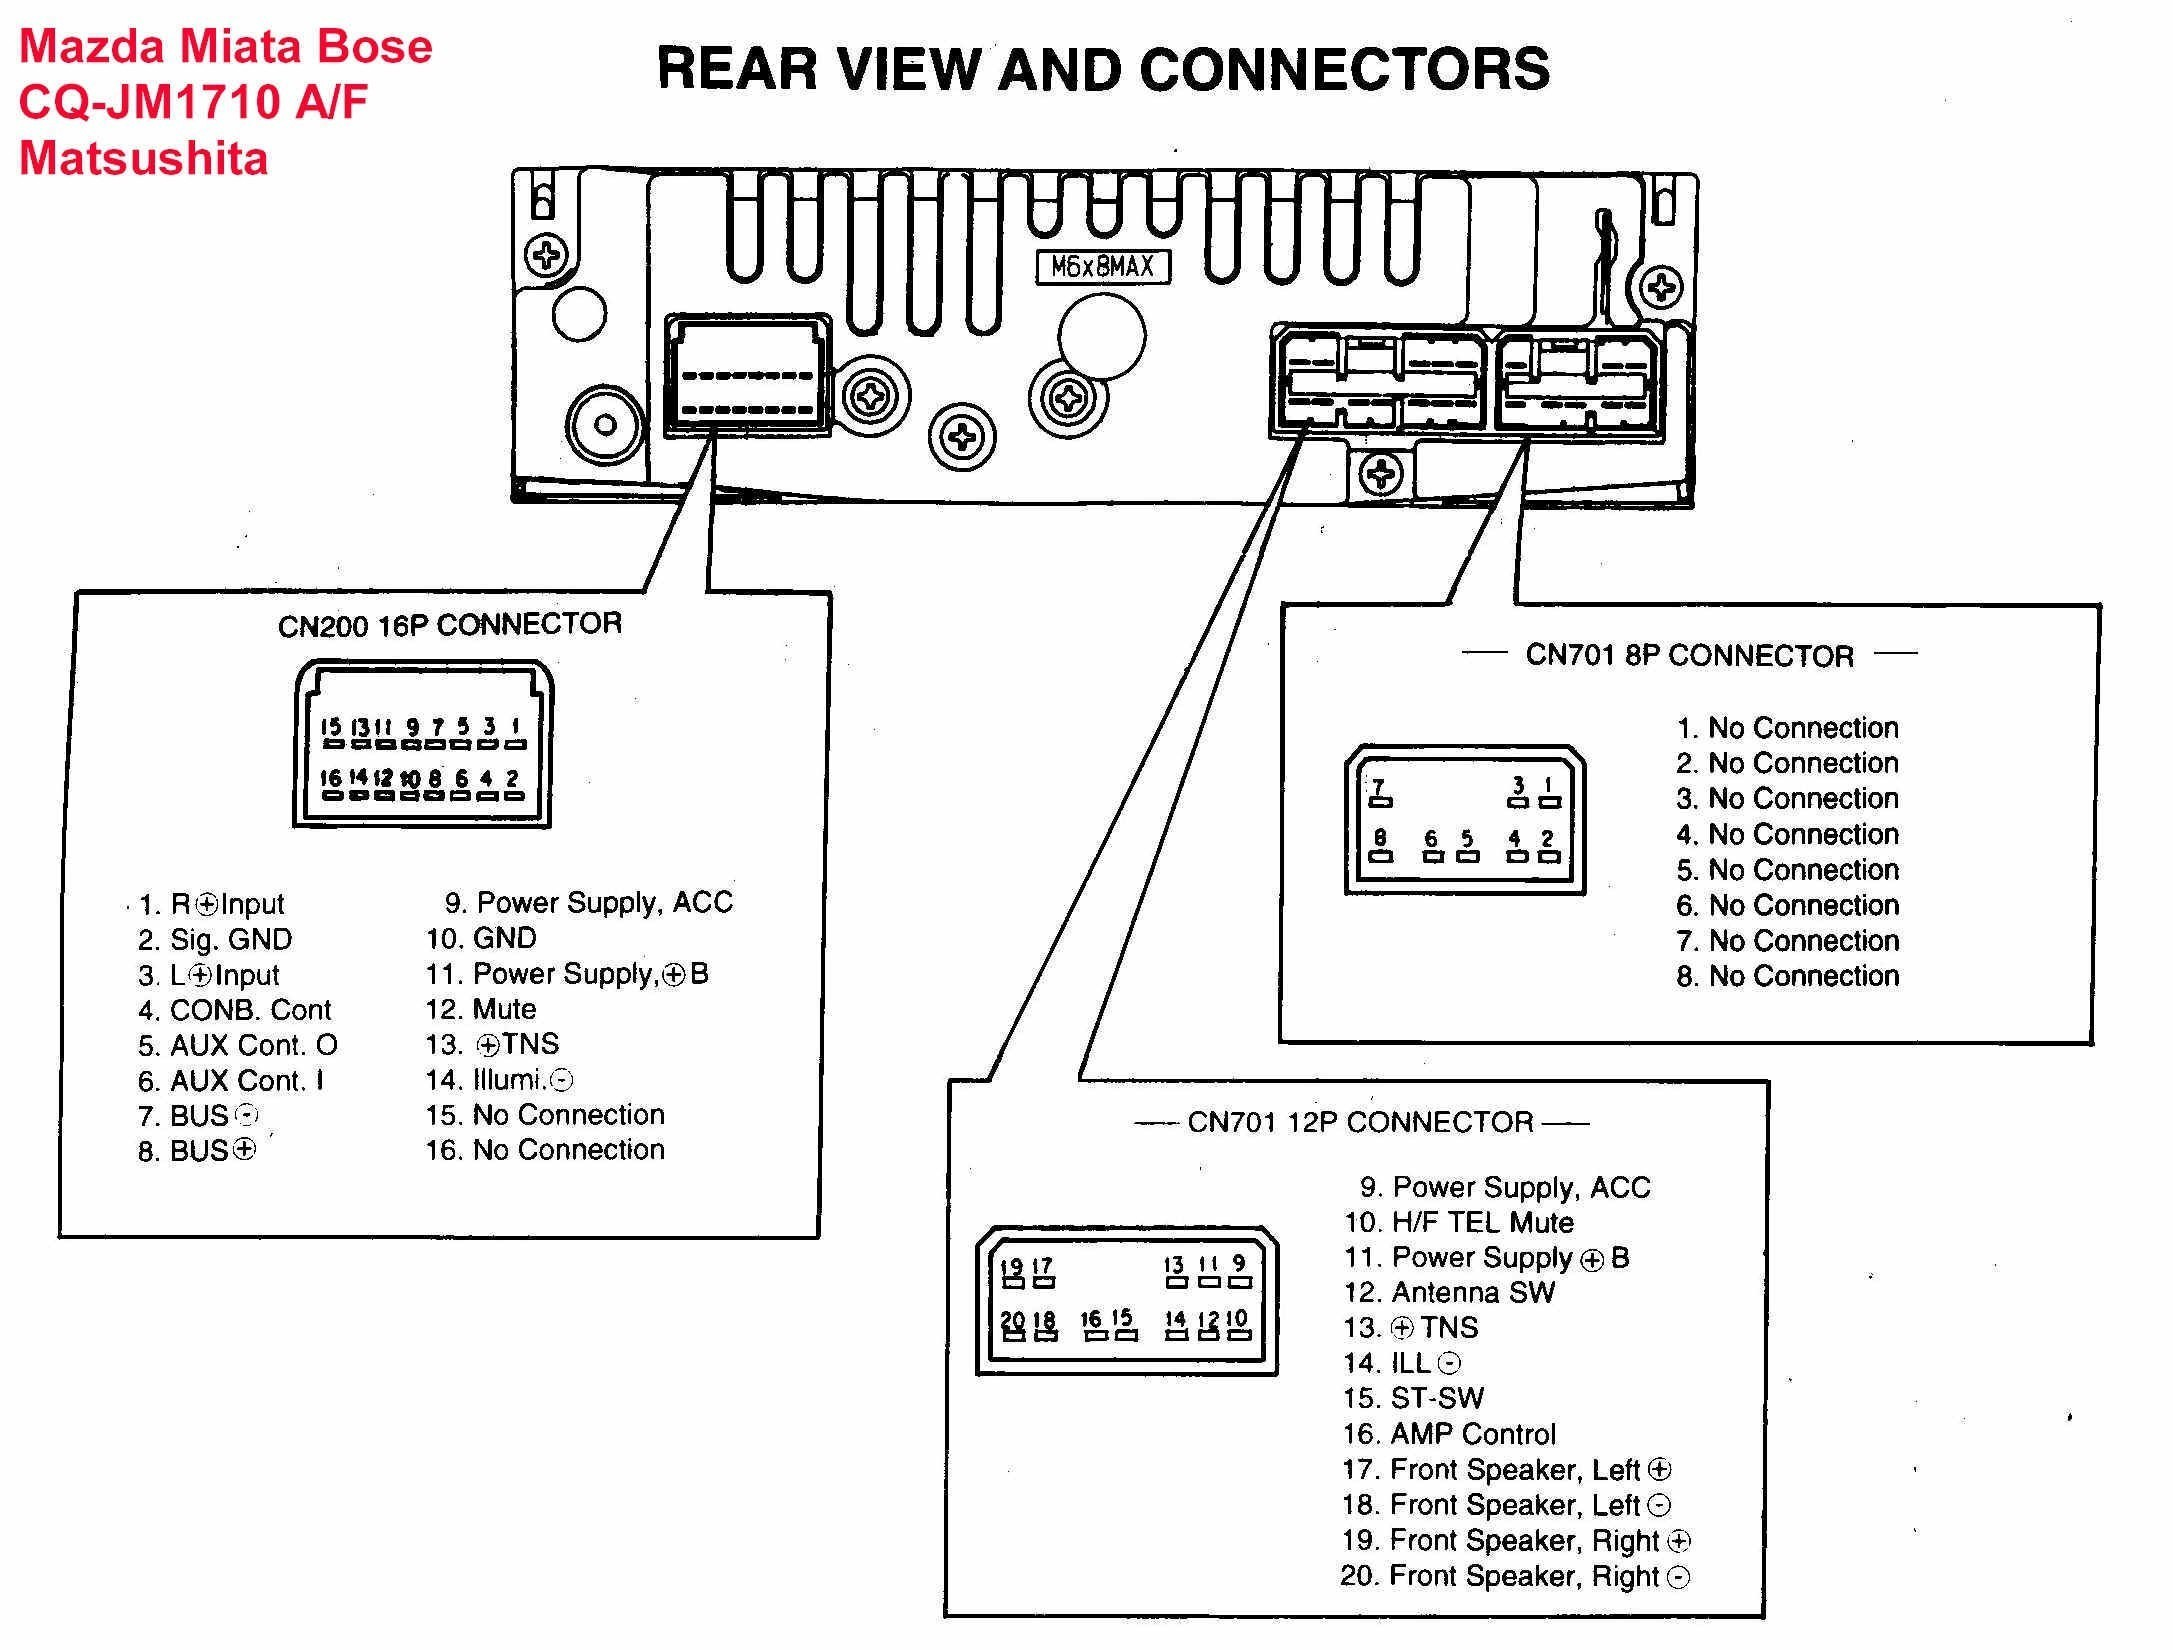 Tpac Some Rca Converter Wiring Diagram Custom Schematic Meaning Explained Diagrams Rh Dmdelectro Co To Vga Pin